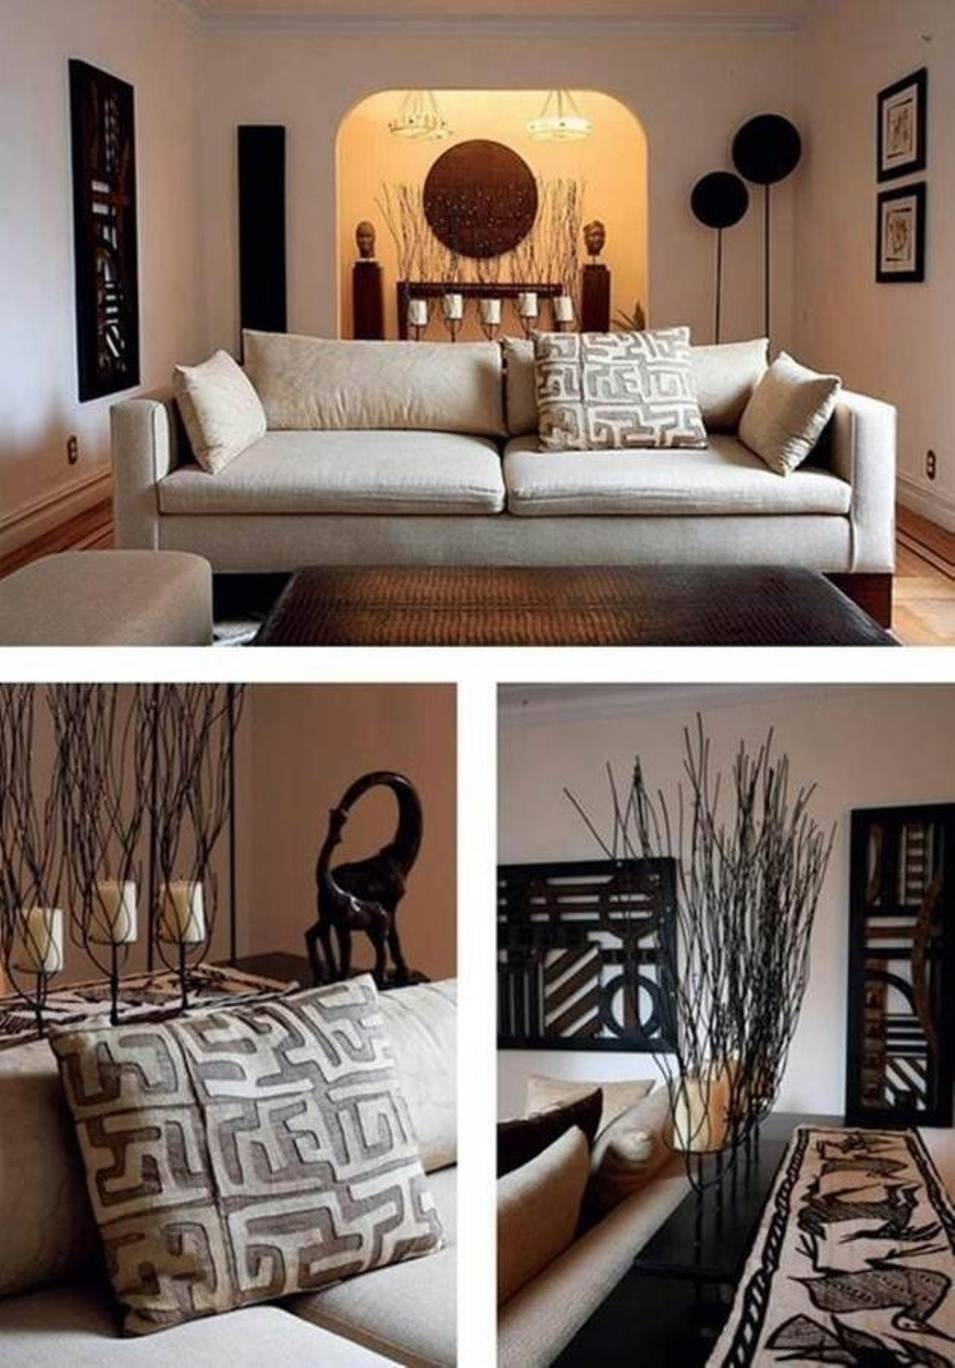 Lovely Decoration African American Wall Decor Amazing Wall Decor Throughout Most Recent African American Wall Art And Decor (View 14 of 20)